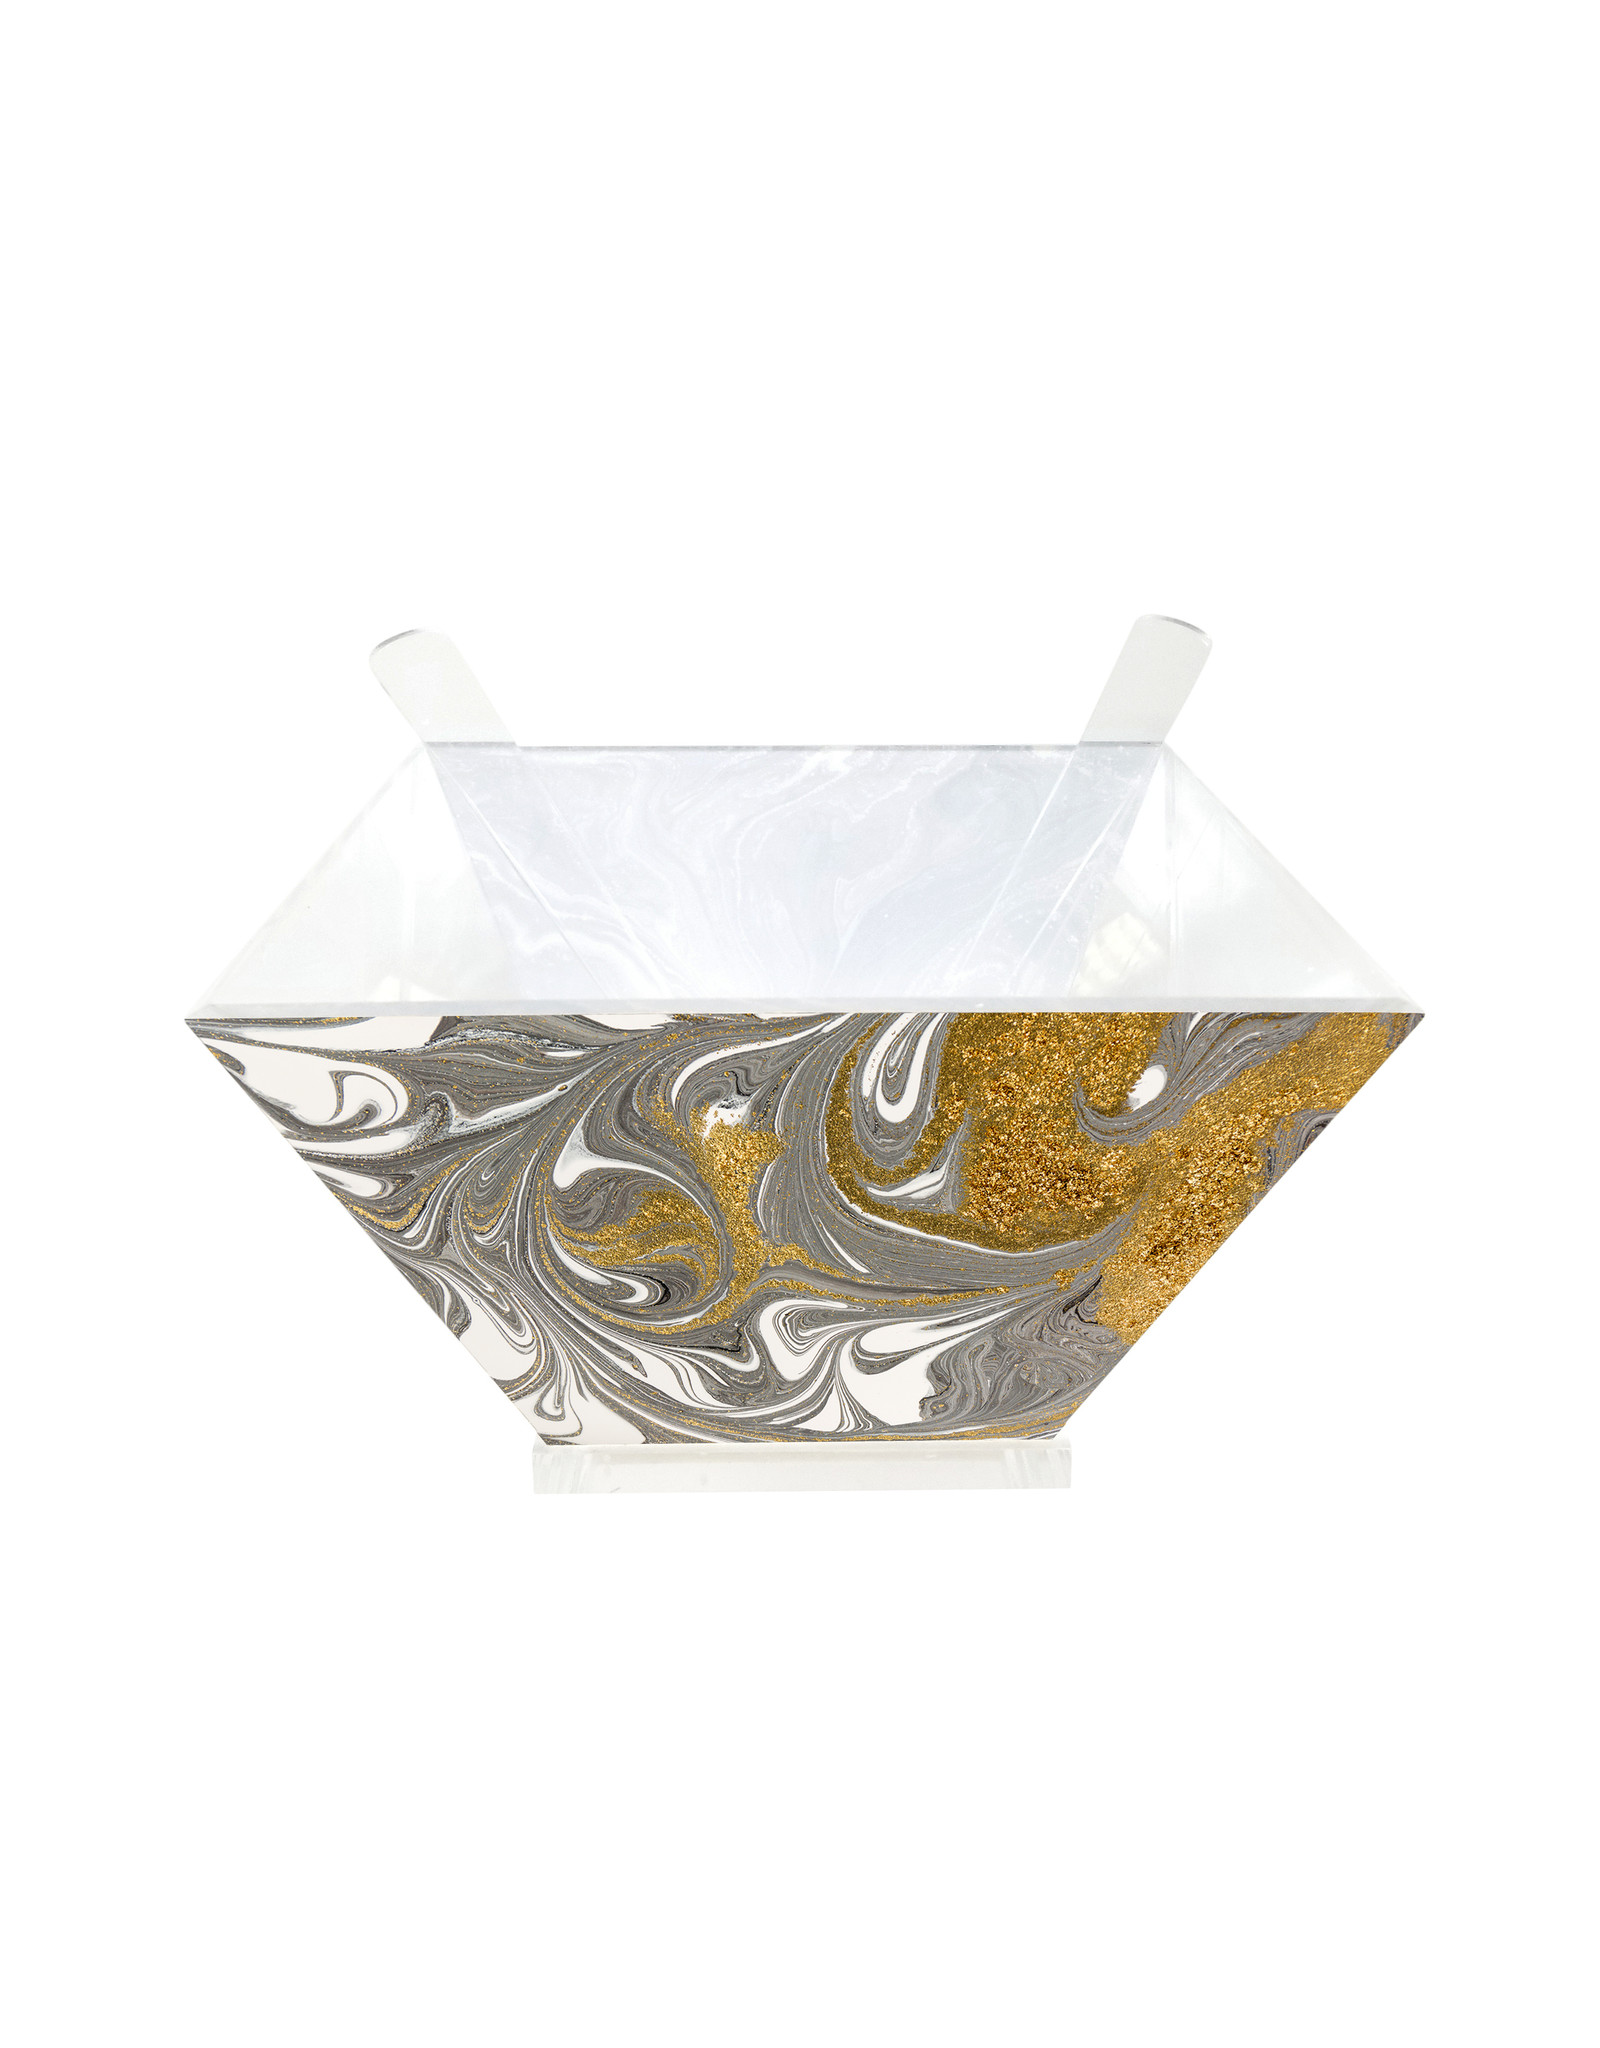 Presented Touch Acrylic Salad Bowl with Servers Gold Marble